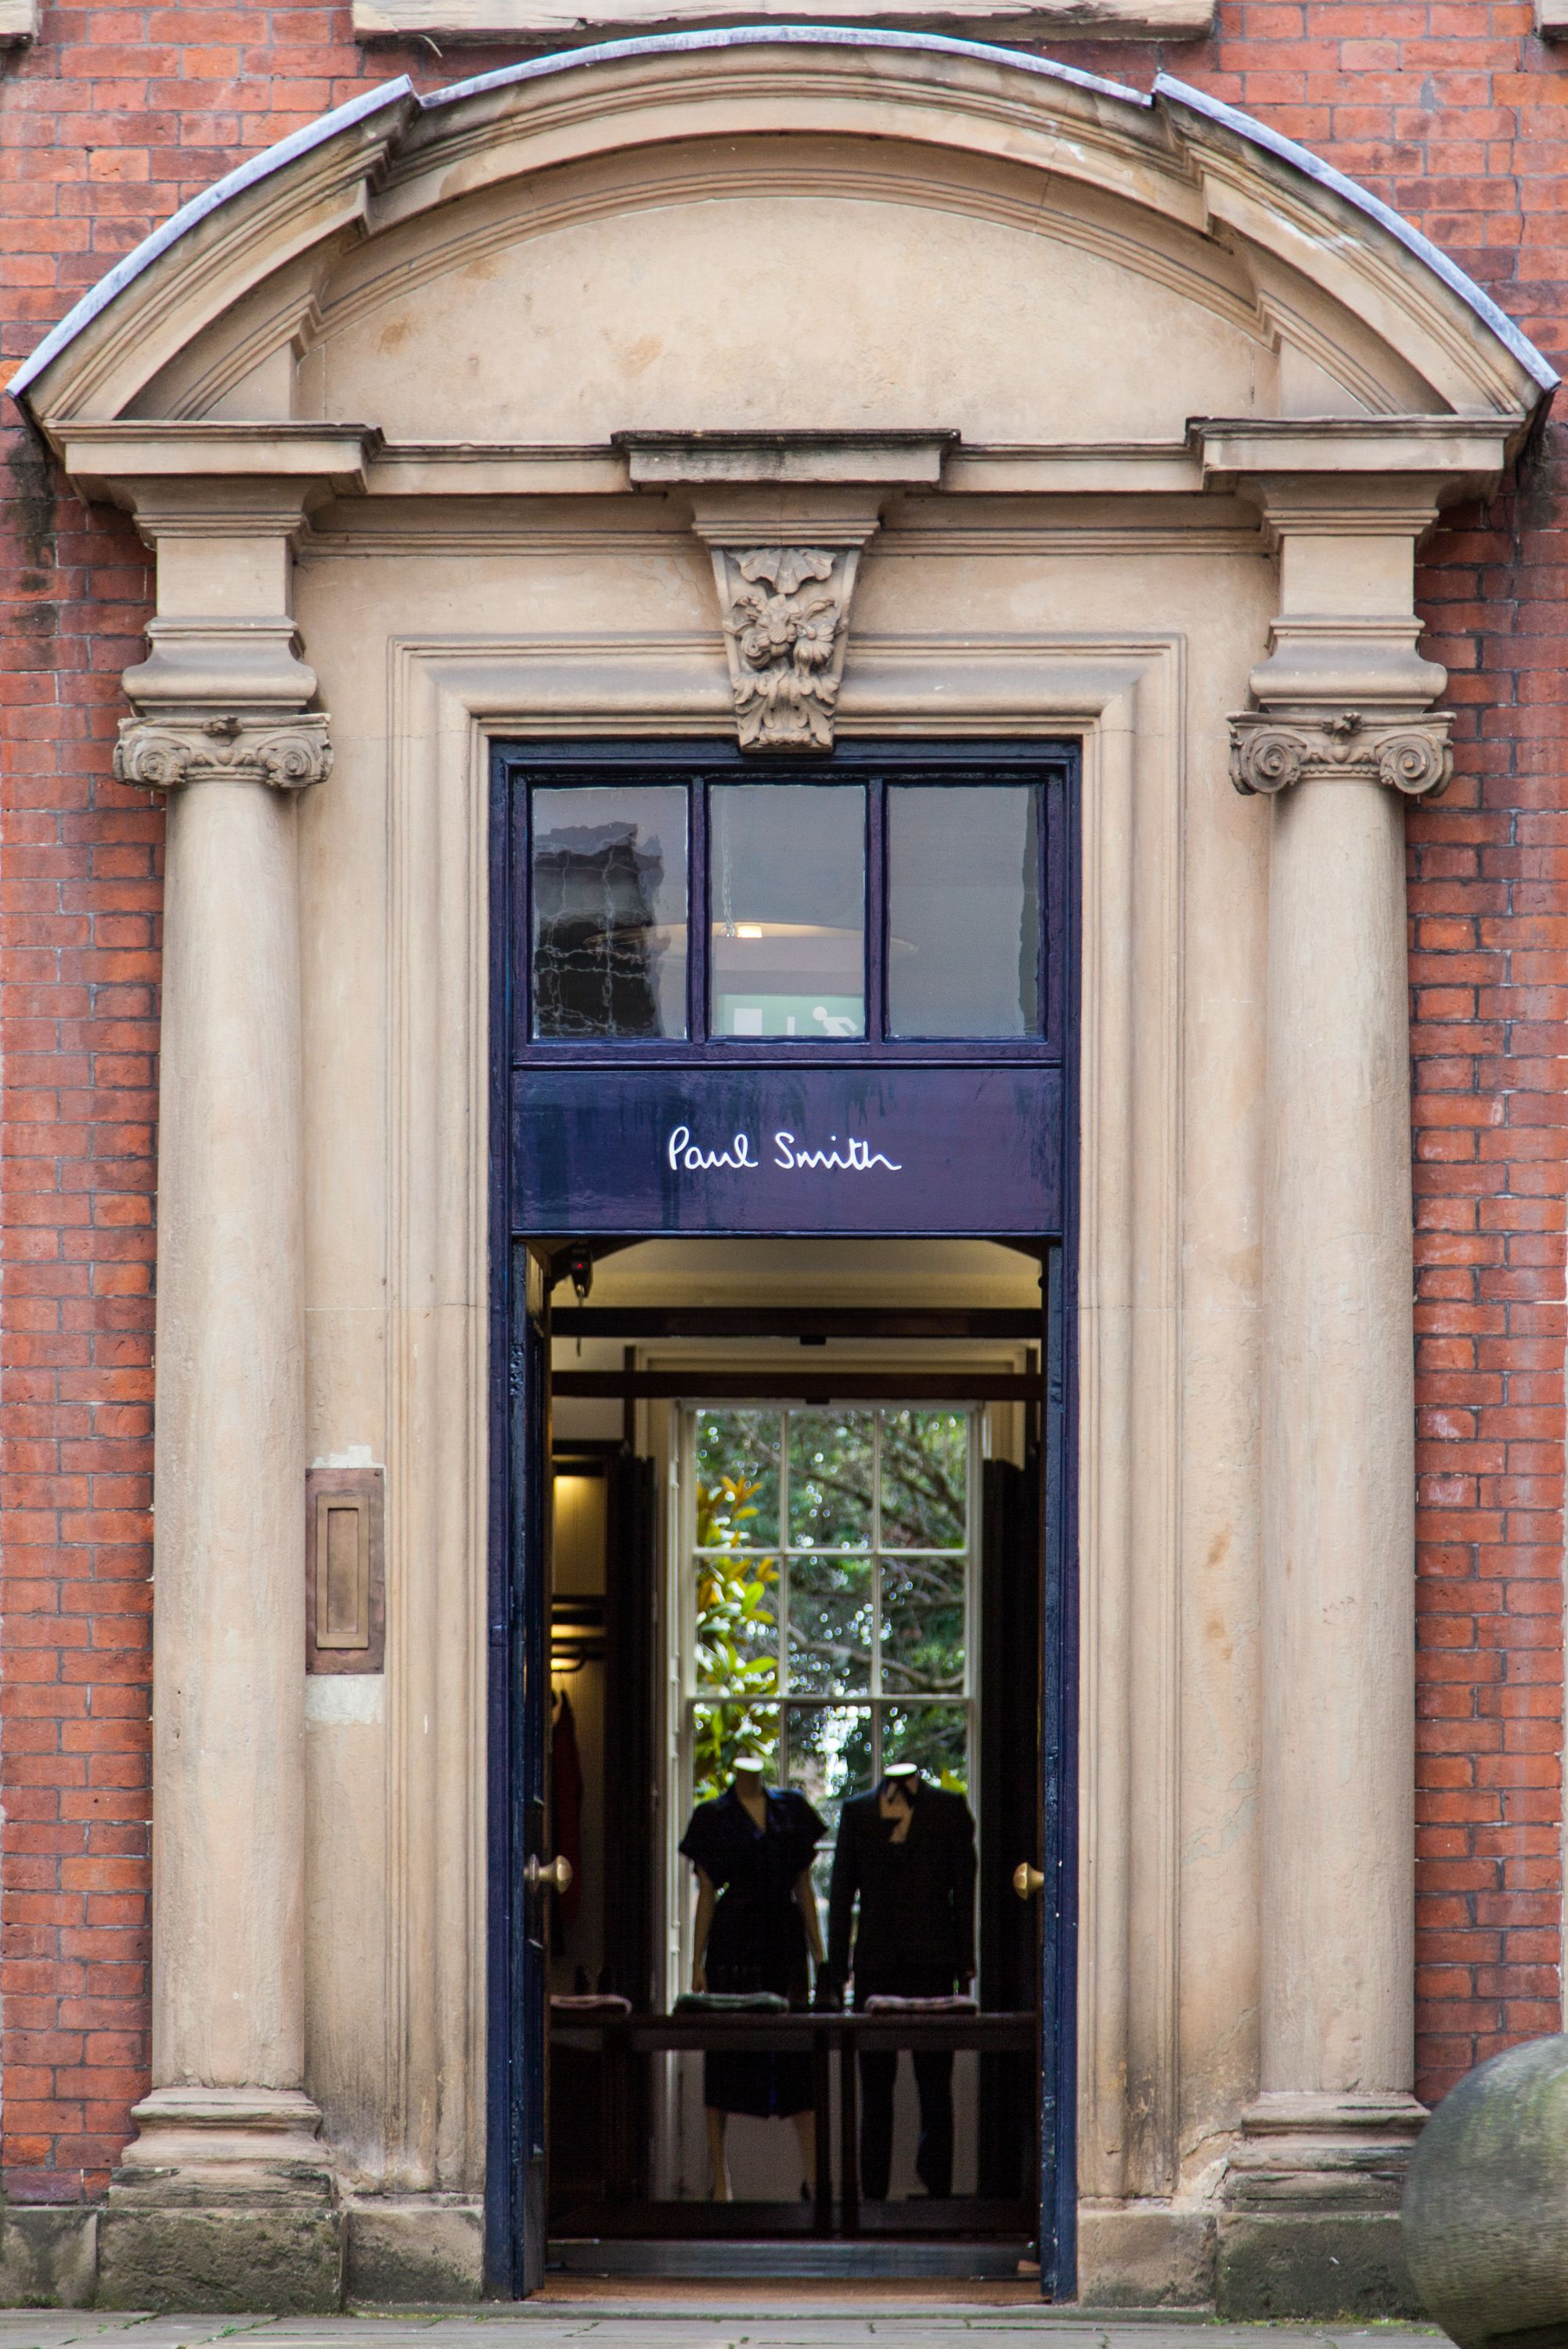 The Paul Smith store in Nottingham.